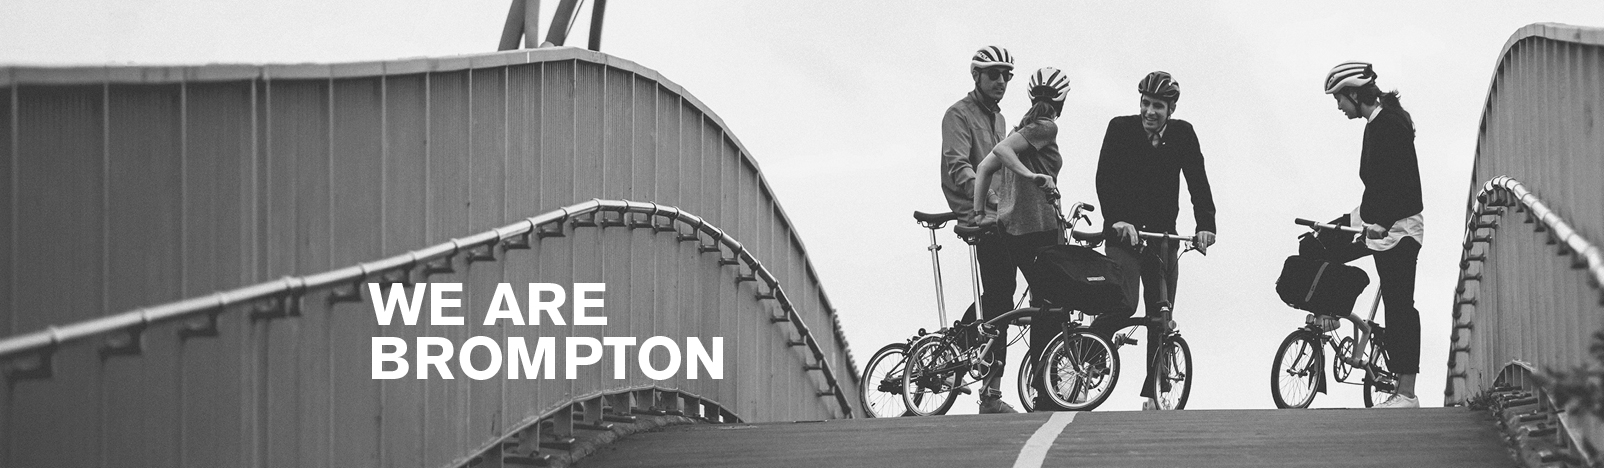 We Are Brompton